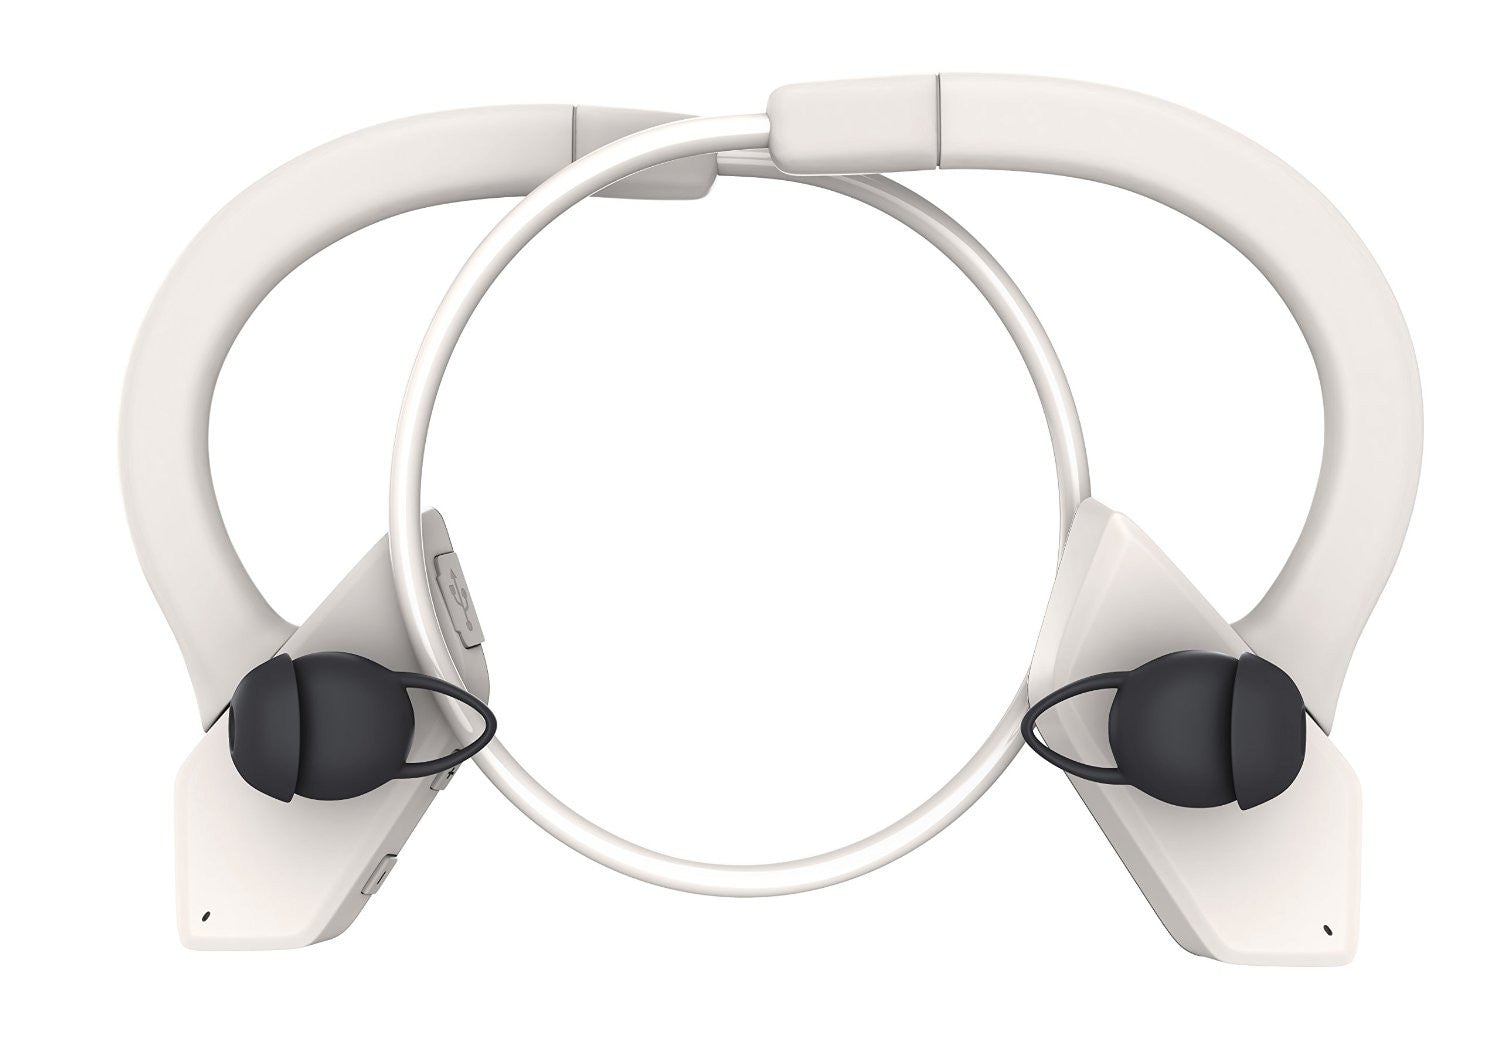 Headphones Bluetooth, Ghostek Earblades White Sweatproof Bluetooth 4.1 Headphones Water Resistant